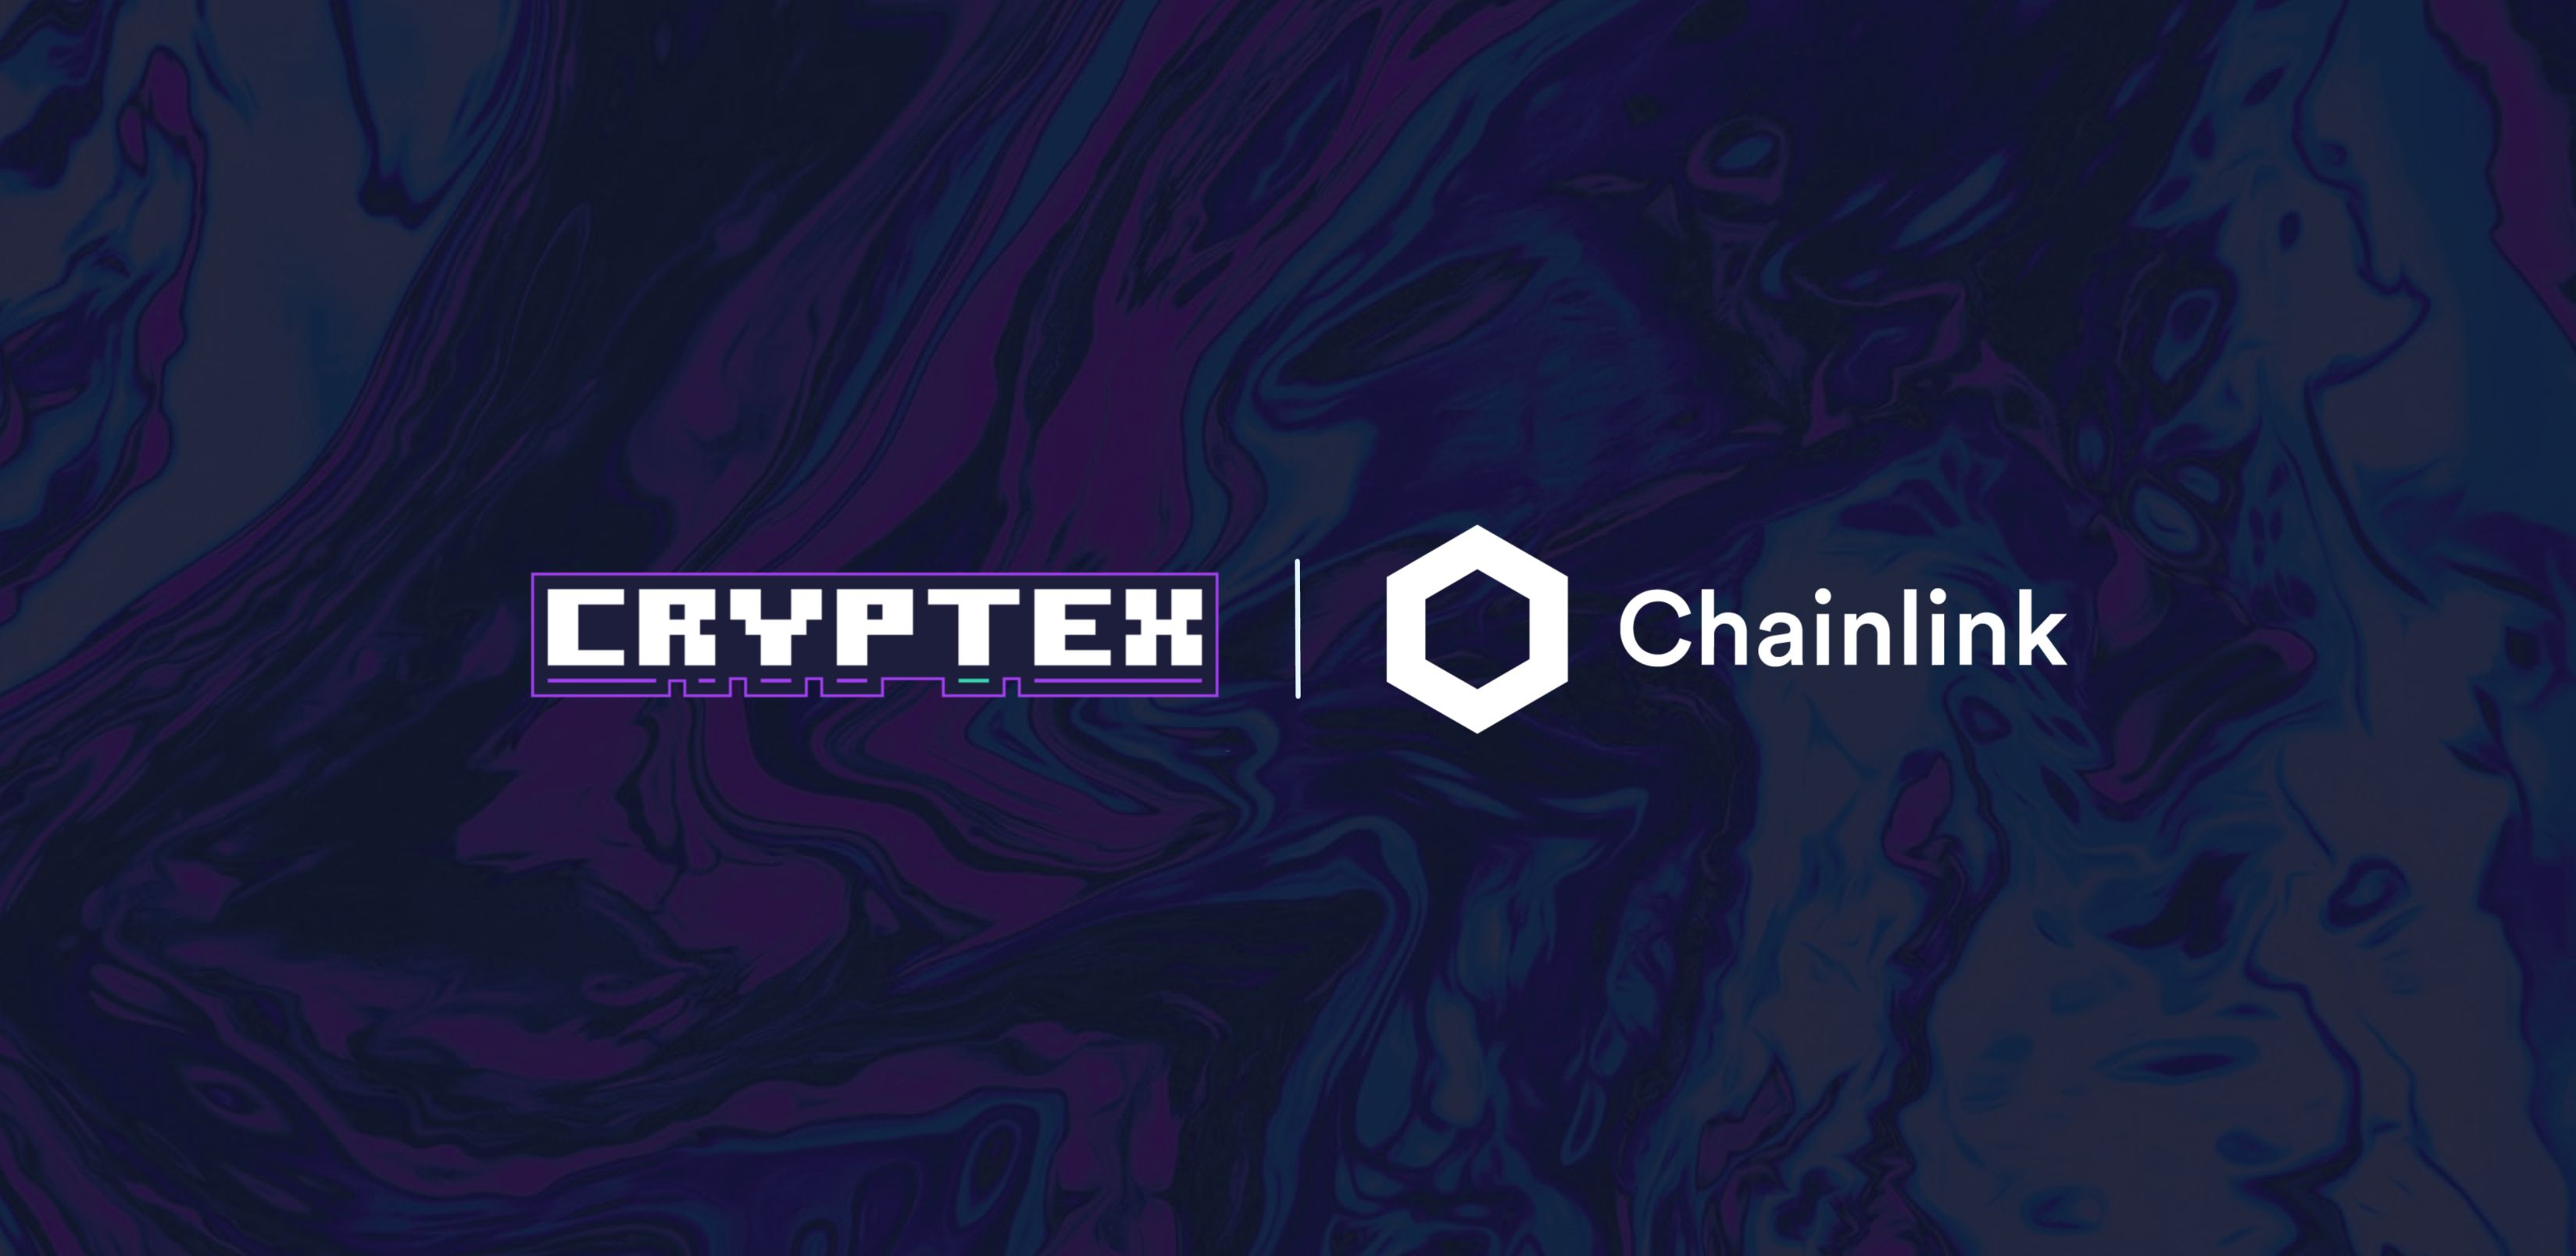 /chainlink-is-set-to-power-cryptexs-flagship-token-tcap-zq3g31sl feature image